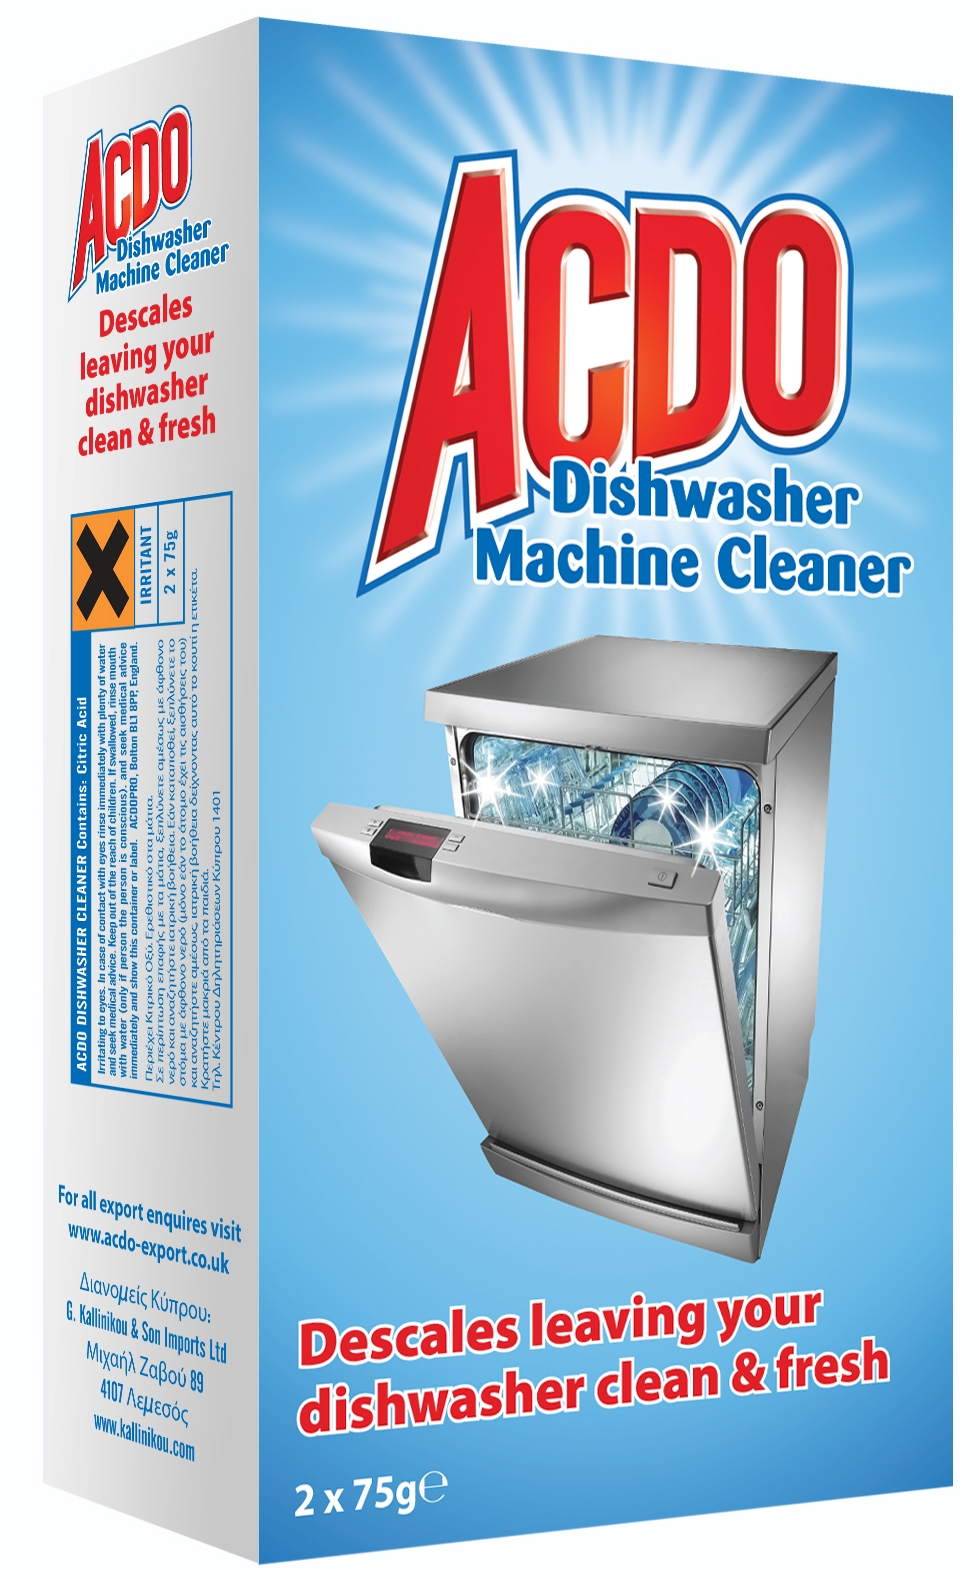 Acdo Dishwasher Cleaner 2x75gr - new